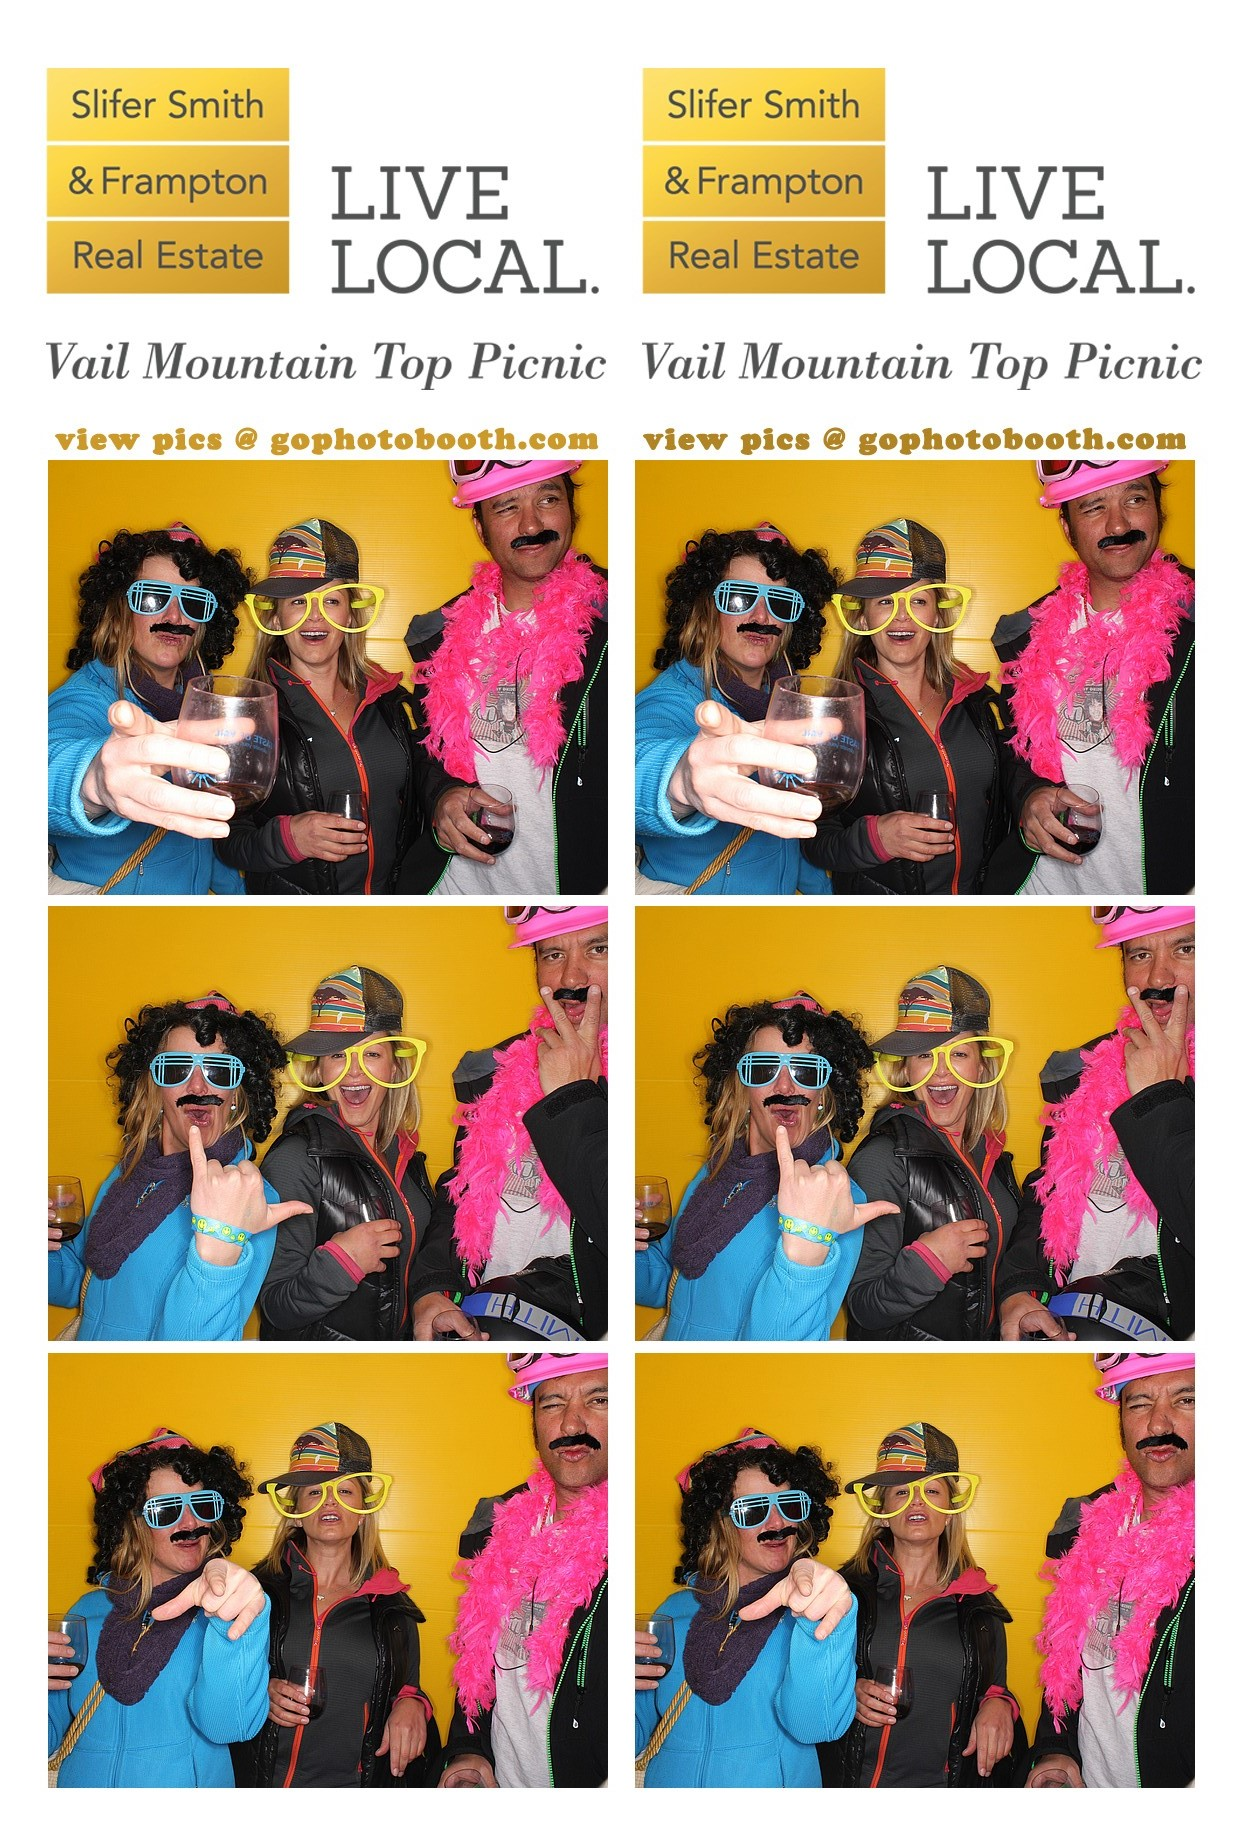 Taste of Vail Photo booth by Slifer, Smith & Frampton